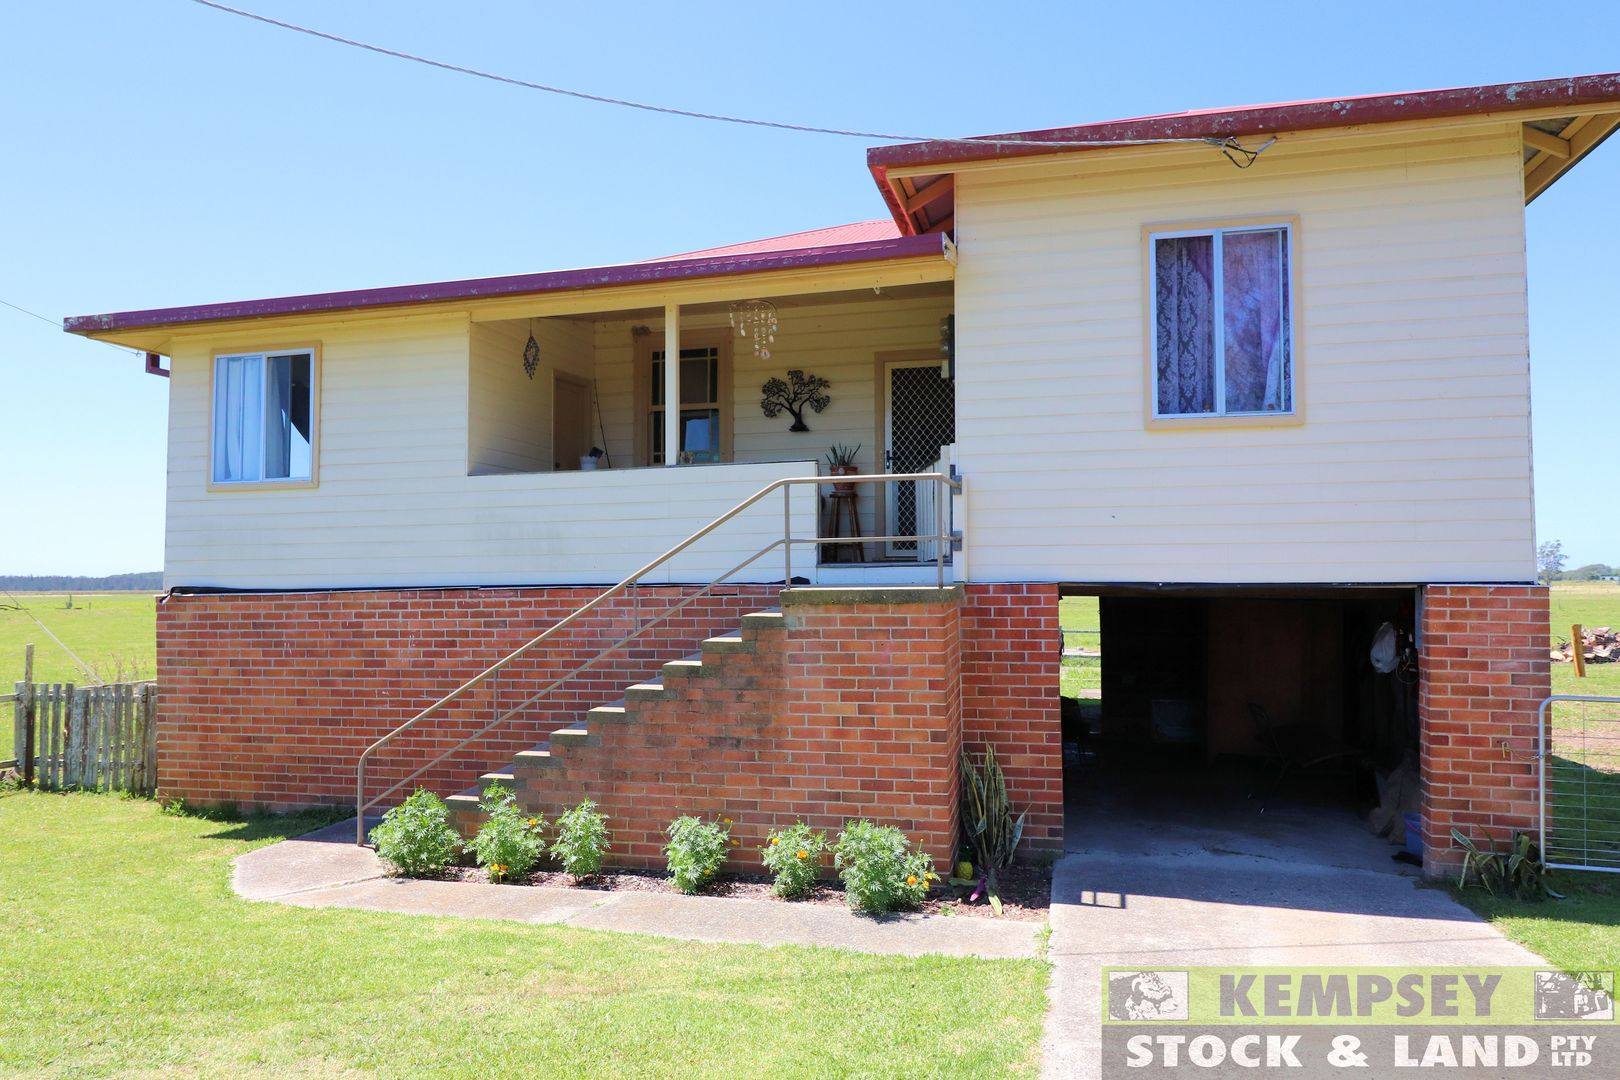 441 Kinchela Creek Right Bank Rd, Kinchela NSW 2440, Image 0